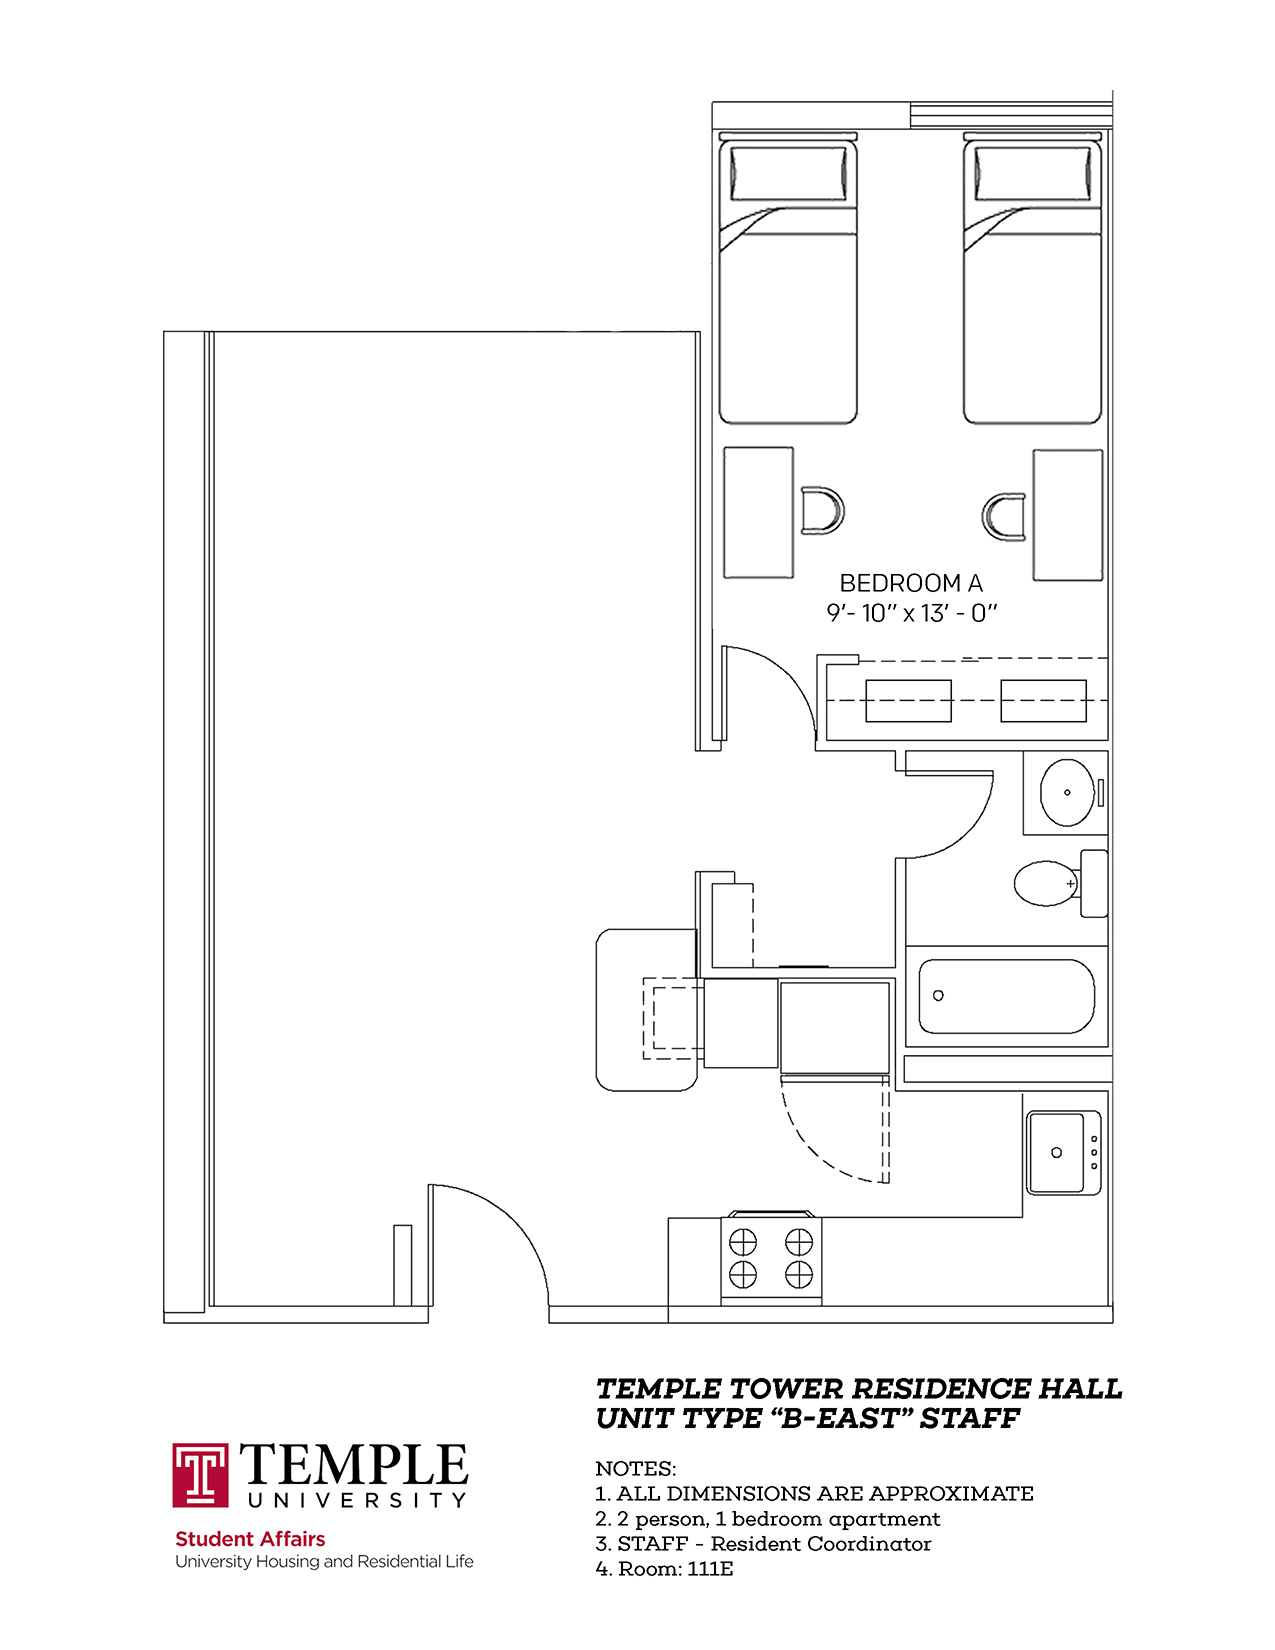 Temple Towers: Unit B East - 2 person, 1 bedroom Apartment